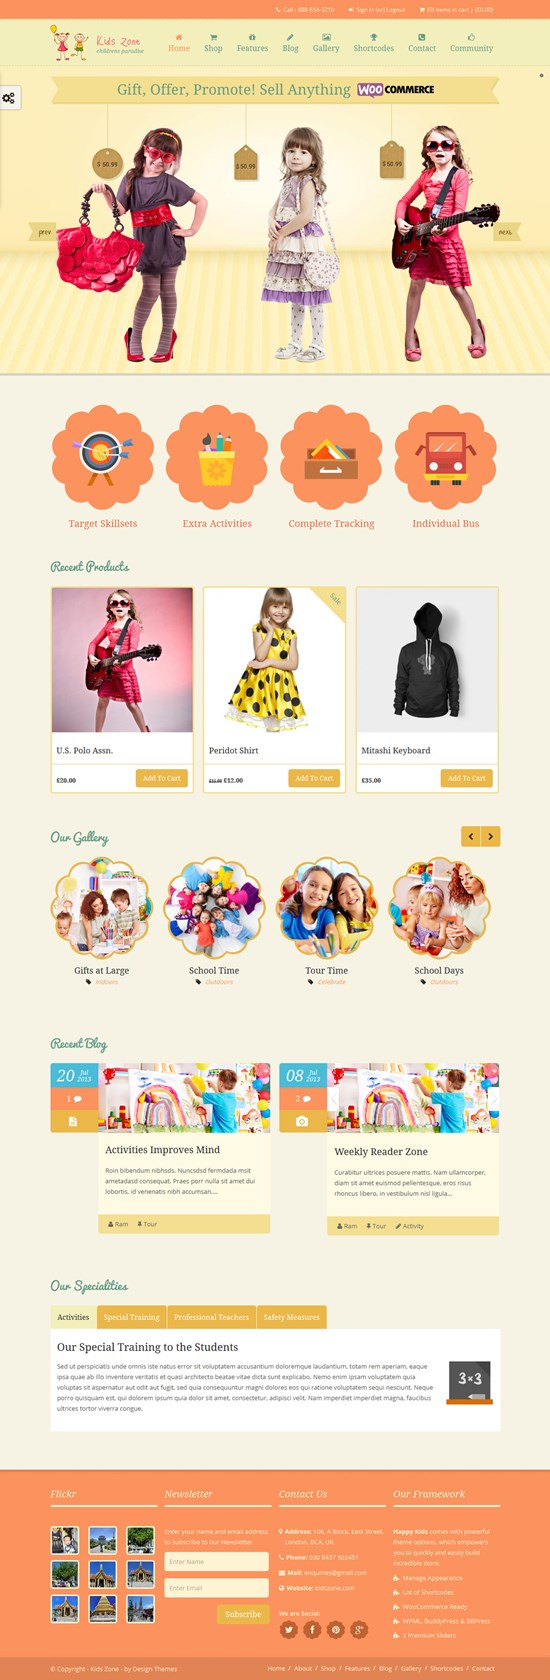 KidsZone Presponsive Children WordPress Theme